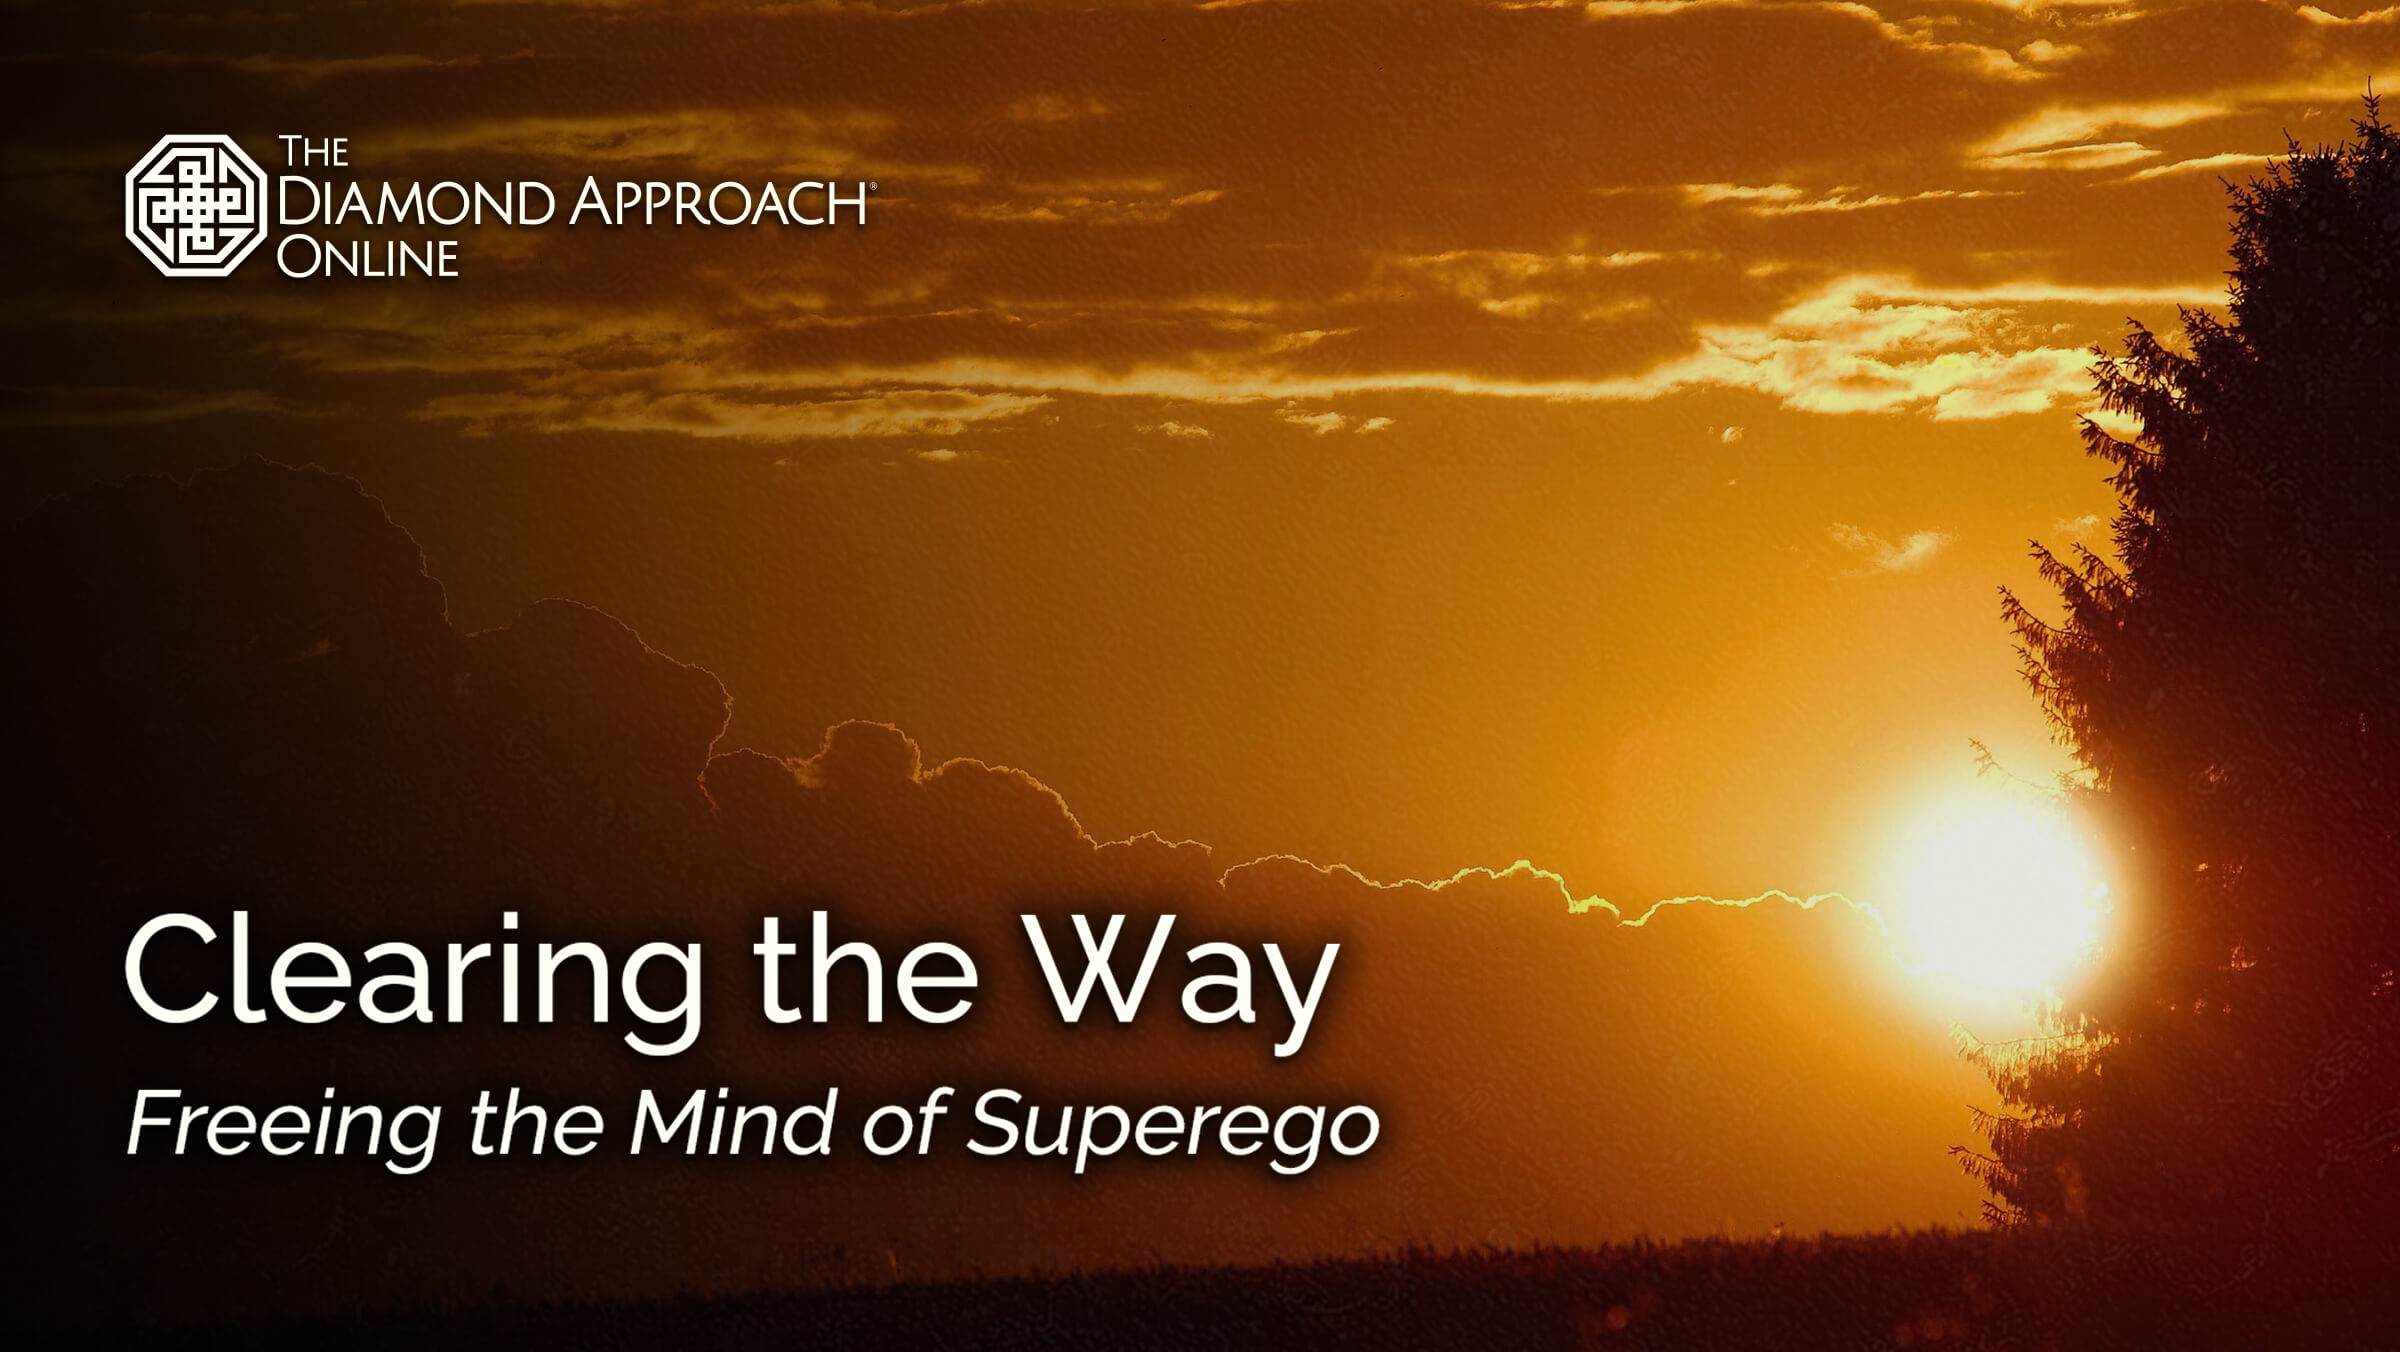 Clearing the Way: Freeing the Mind of Superego